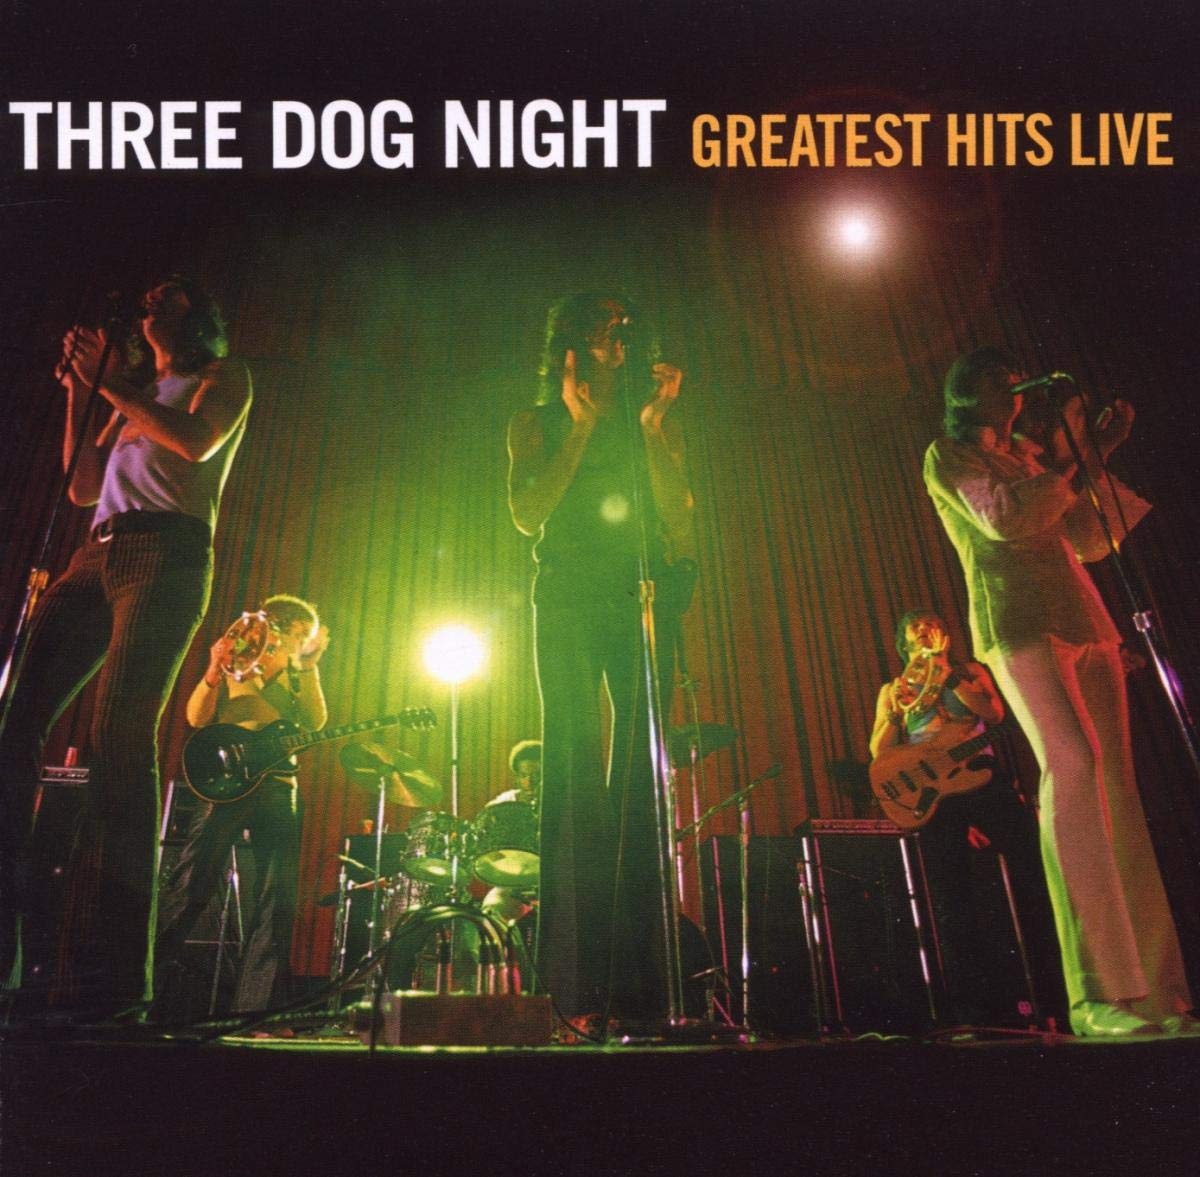 Three Store Dog outlet Live Night